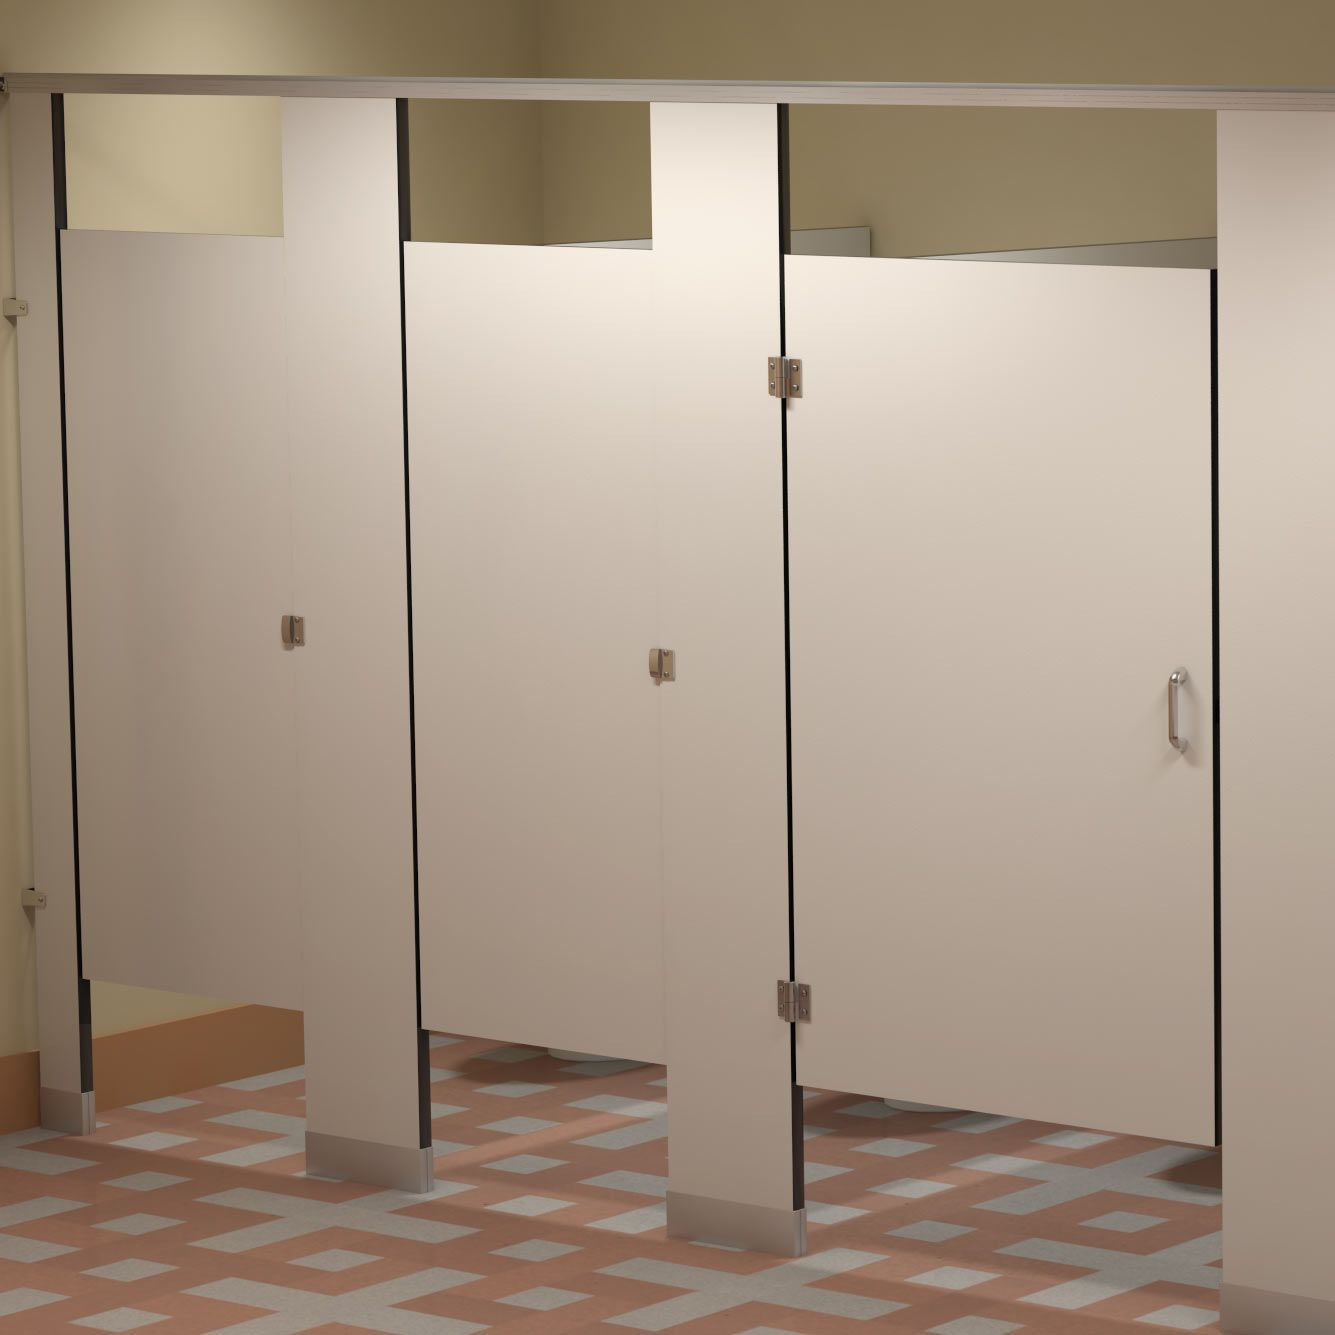 Bradley Bathroom Partitions Property phenolic bathroom partitions for sale cheap at discount wholesale